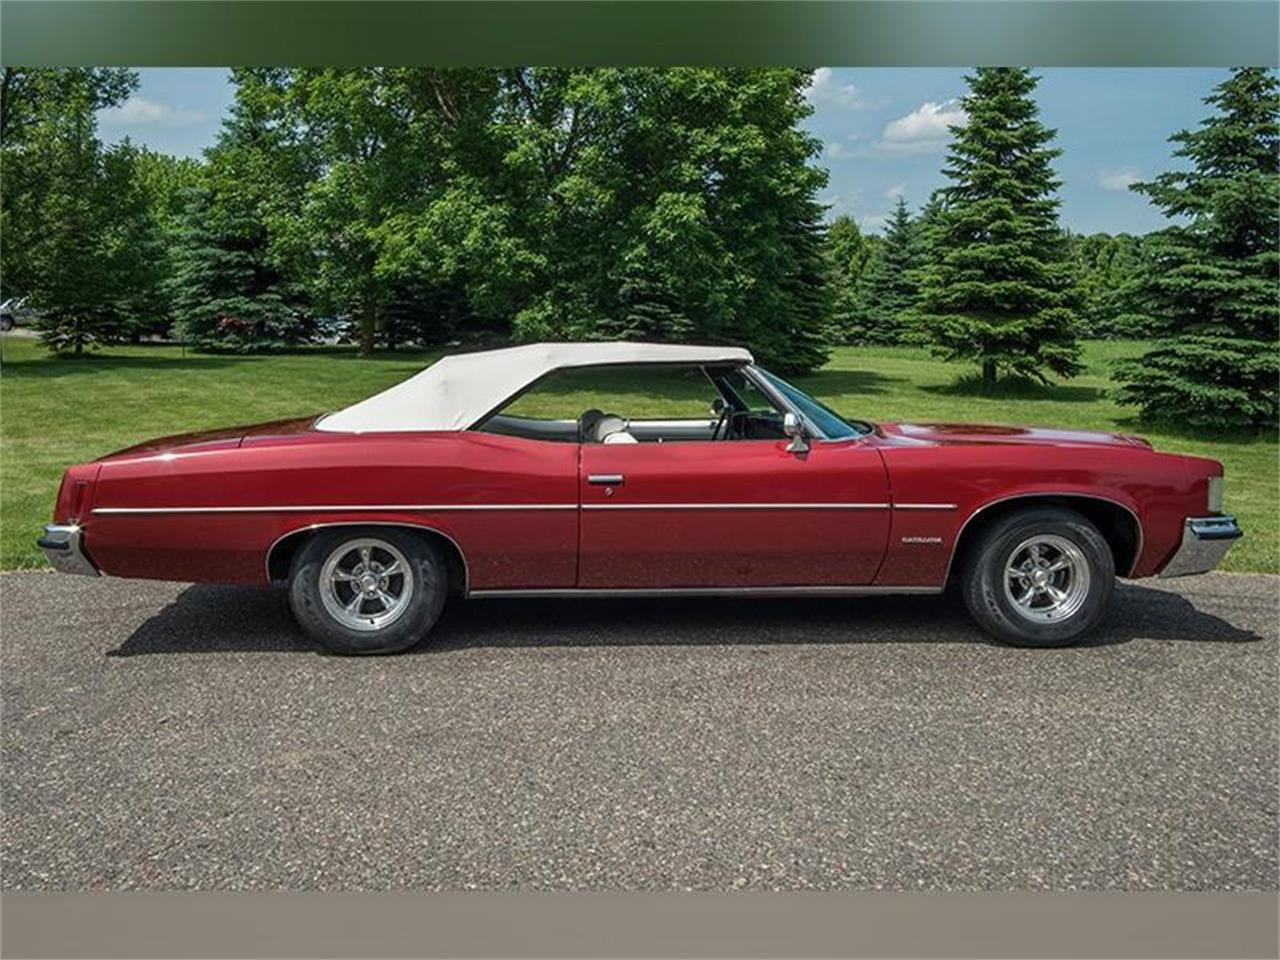 Large Picture of Classic 1972 Pontiac Catalina - $14,500.00 - LE8D